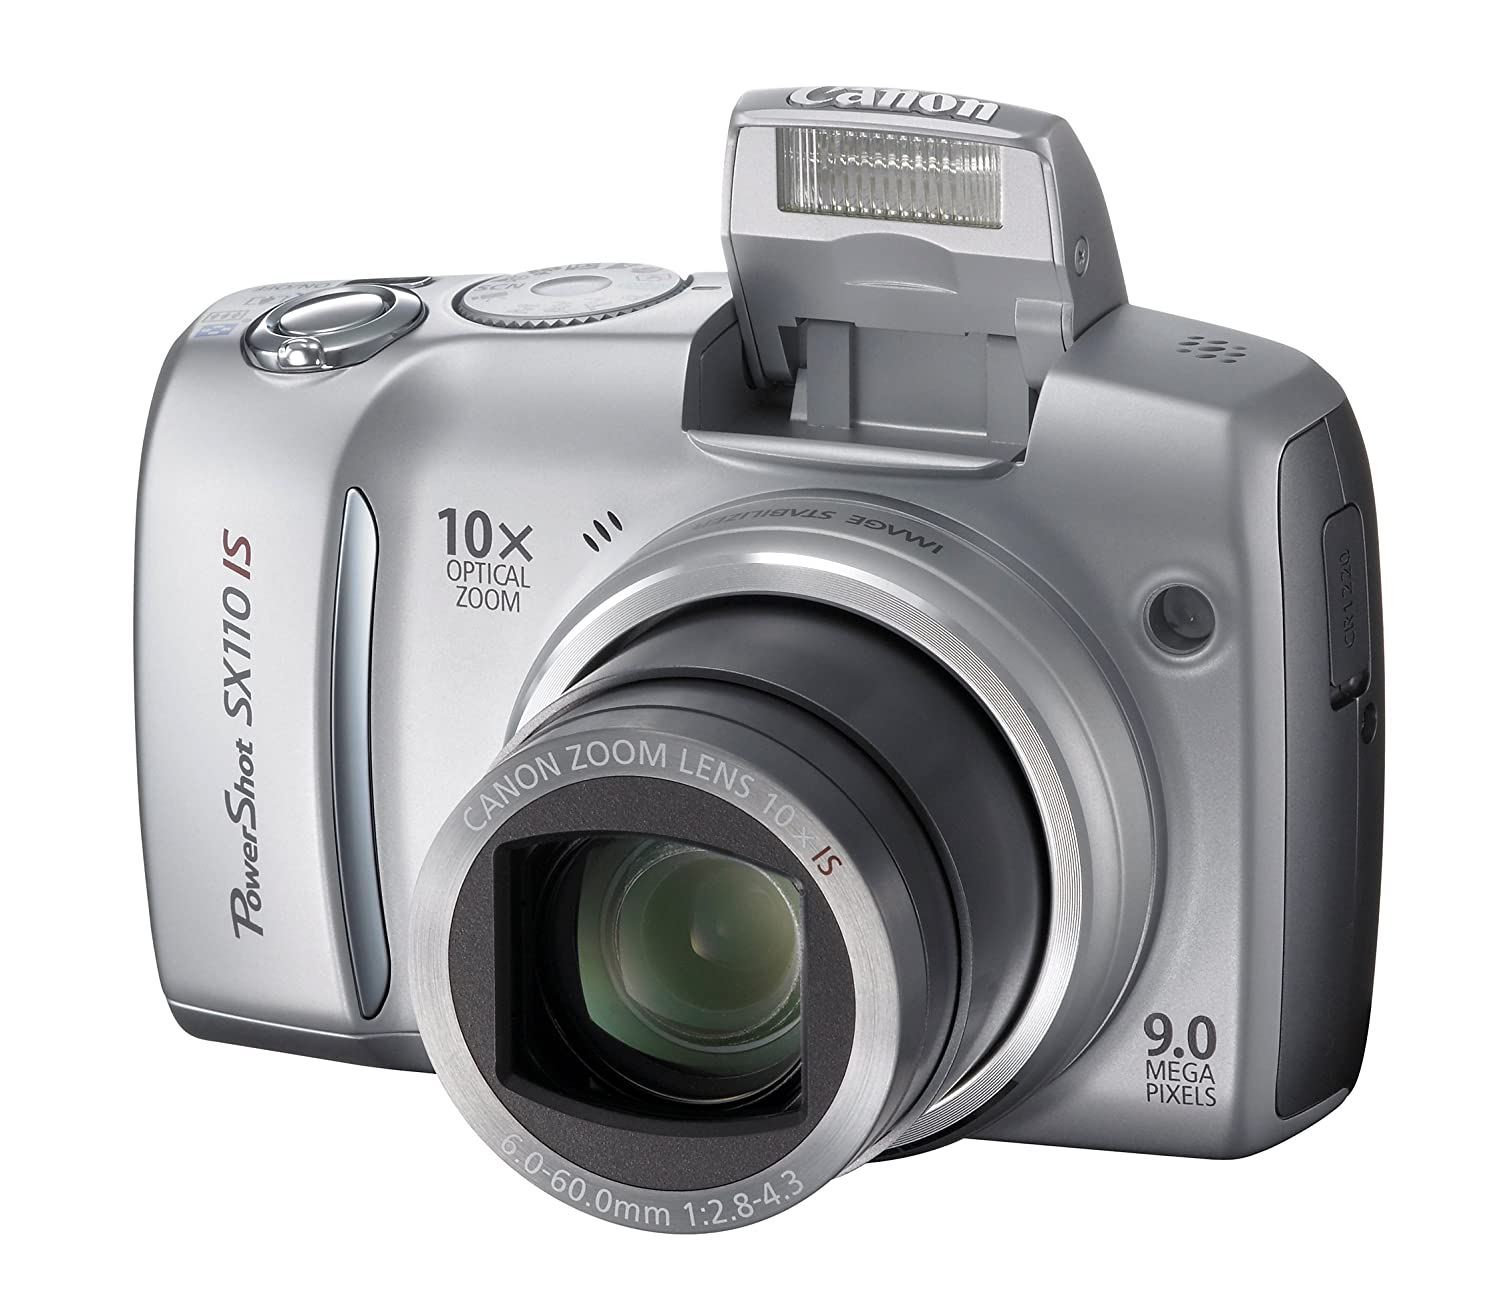 Amazon.com : Canon Powershot SX110IS 9MP Digital Camera with 10x Optical  Image Stabilized Zoom (Silver) : Point And Shoot Digital Cameras : Camera &  Photo